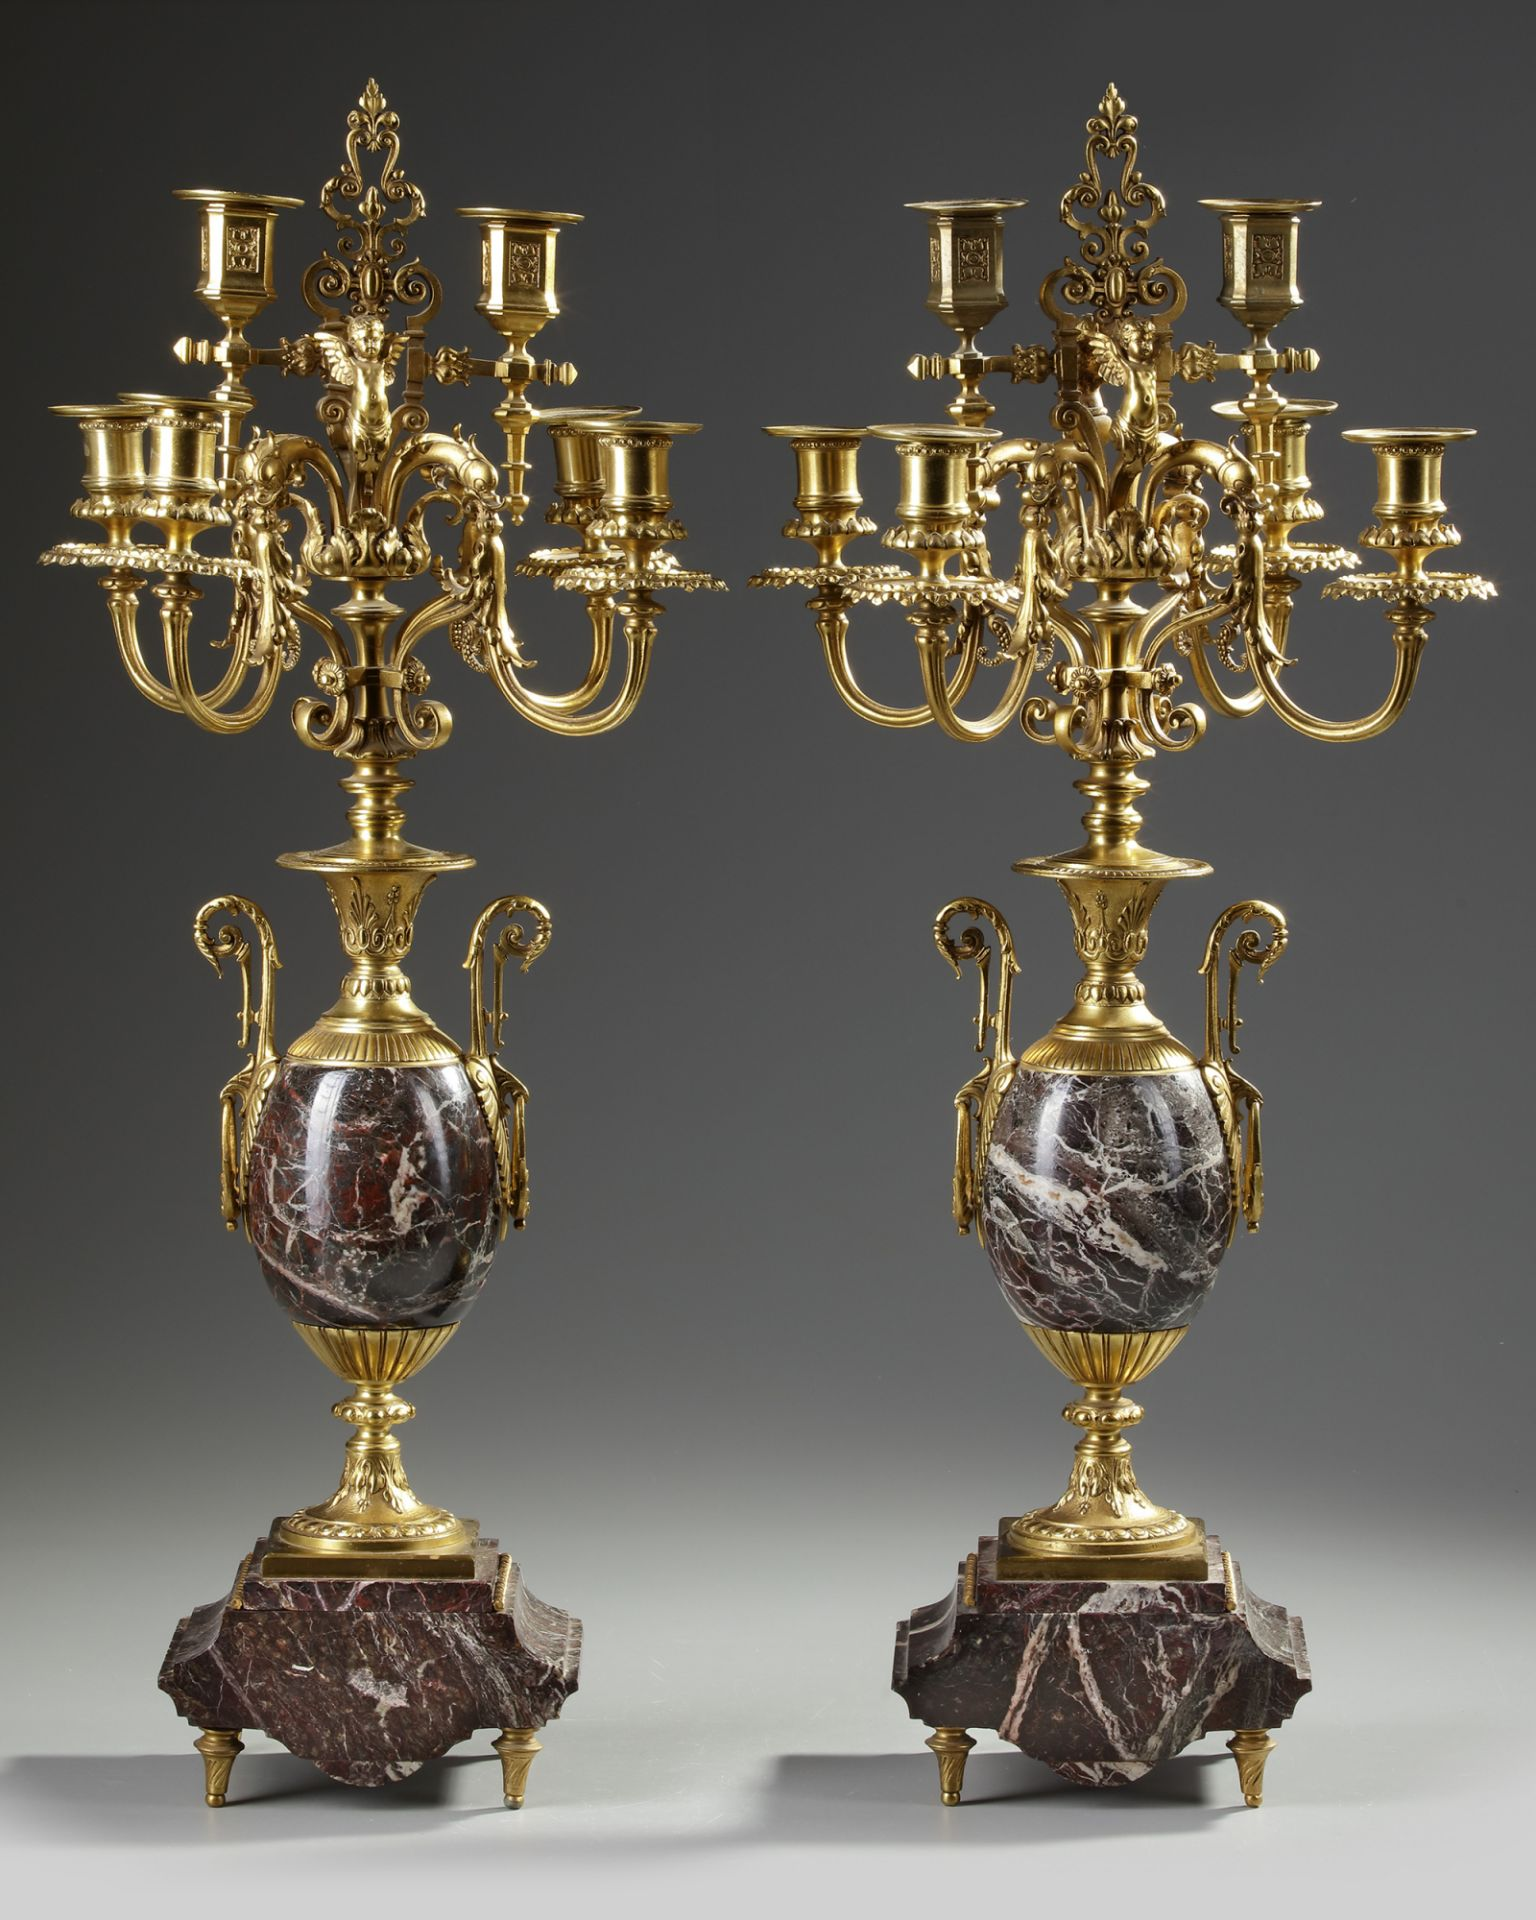 A PAIR OF FRENCH GILT CANDELABRAS.LATE 19TH CENTURY - Image 2 of 3